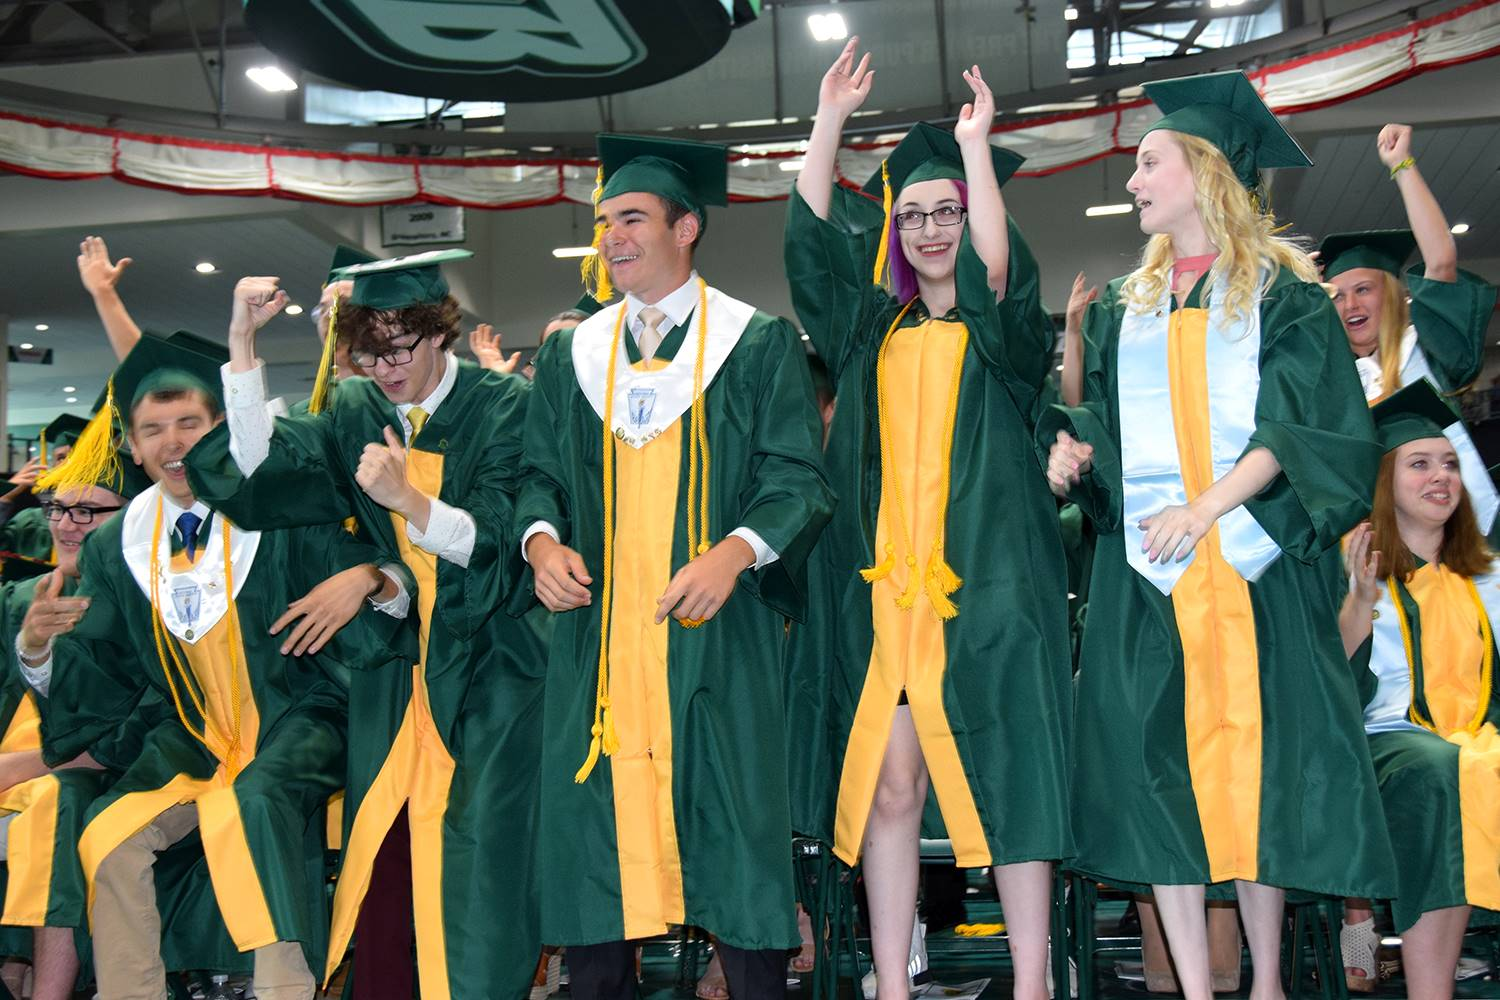 Graduates-to-be in the front row stand up after another Vestal High School Graduation tradition, the